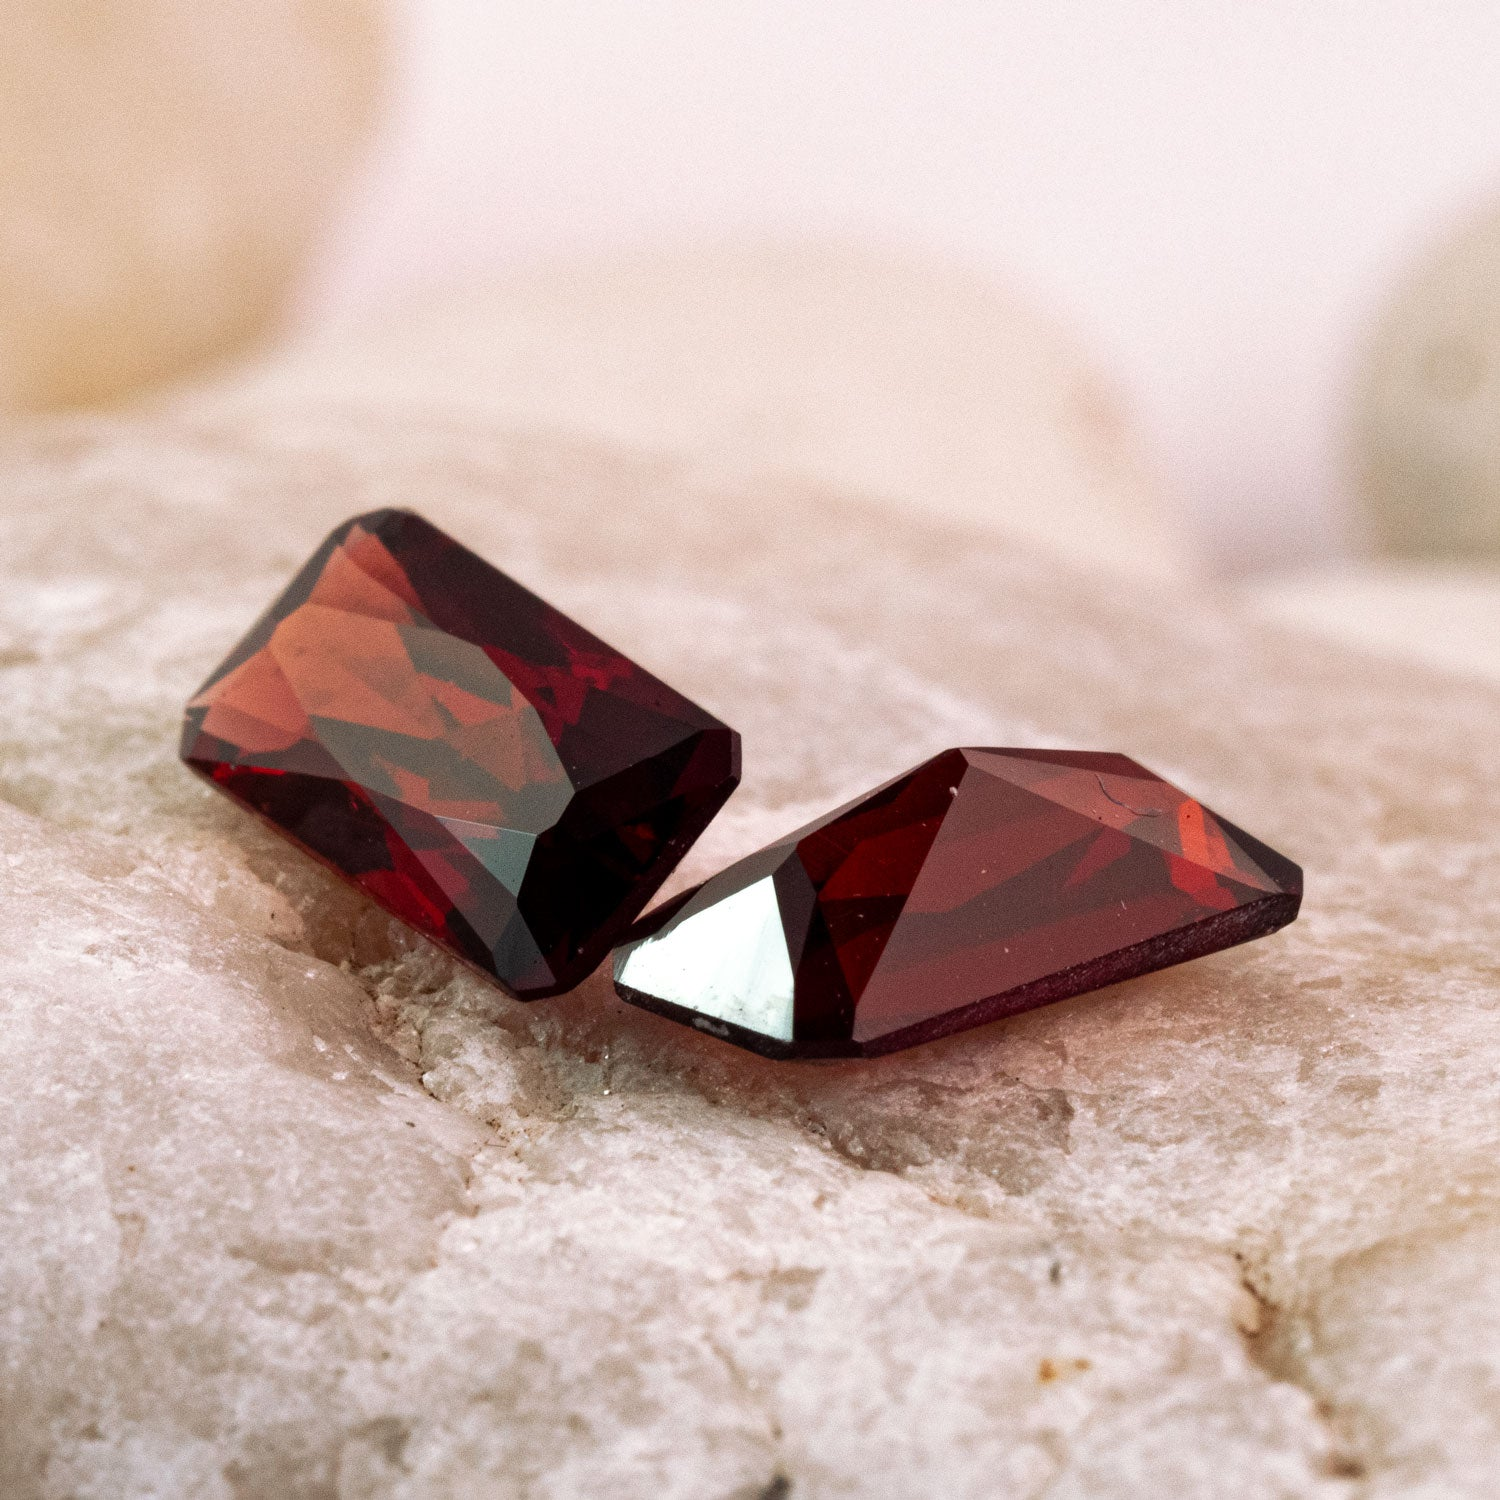 pair of garnets are a deep burgandy with a hint of orange. This pair are unheated and were responsibly sourced as rough gems from Mozambique